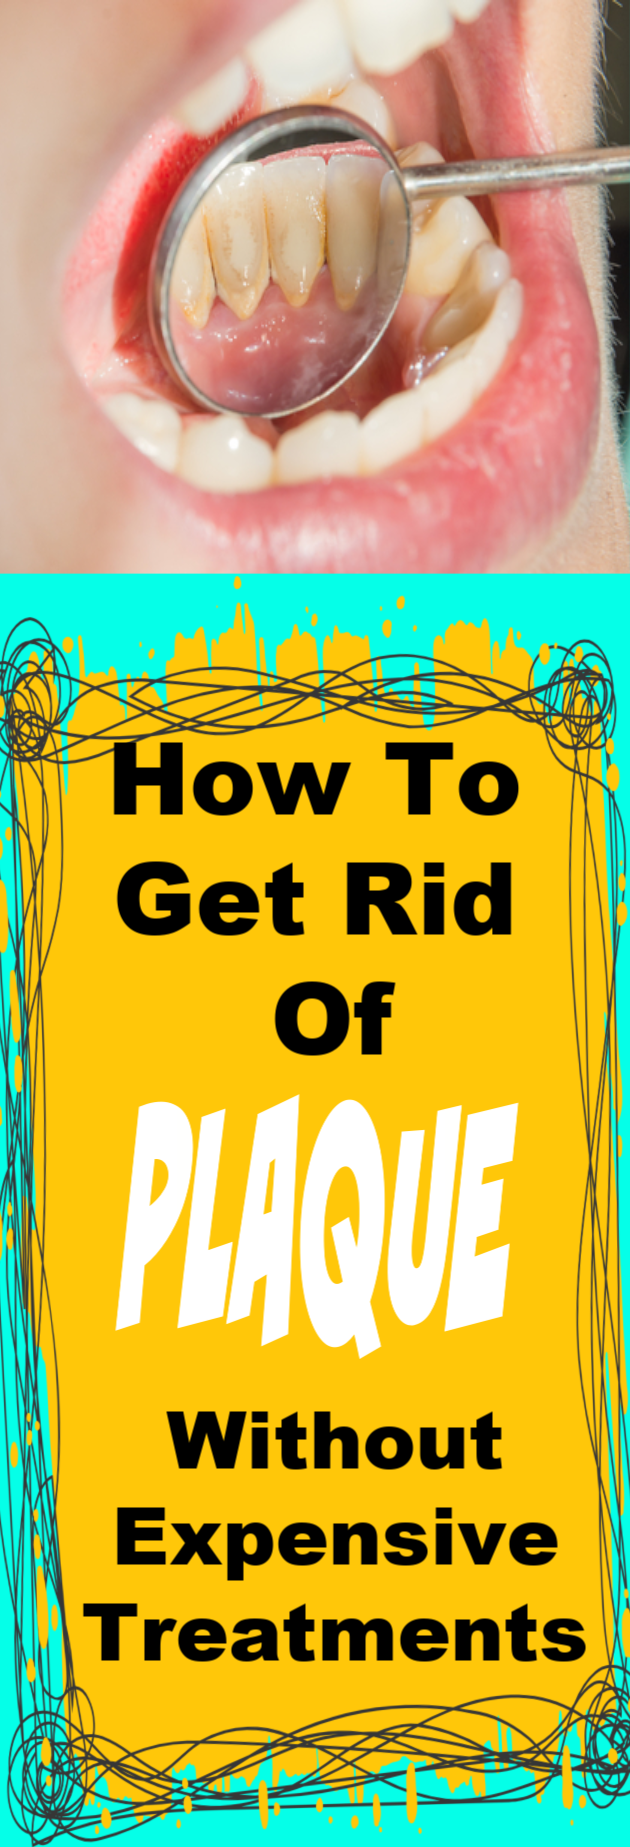 How to Get Rid of Plaque and Whiten Your Teeth Without Expensive Treatments - Glowpink #howtowhitenyourteeth